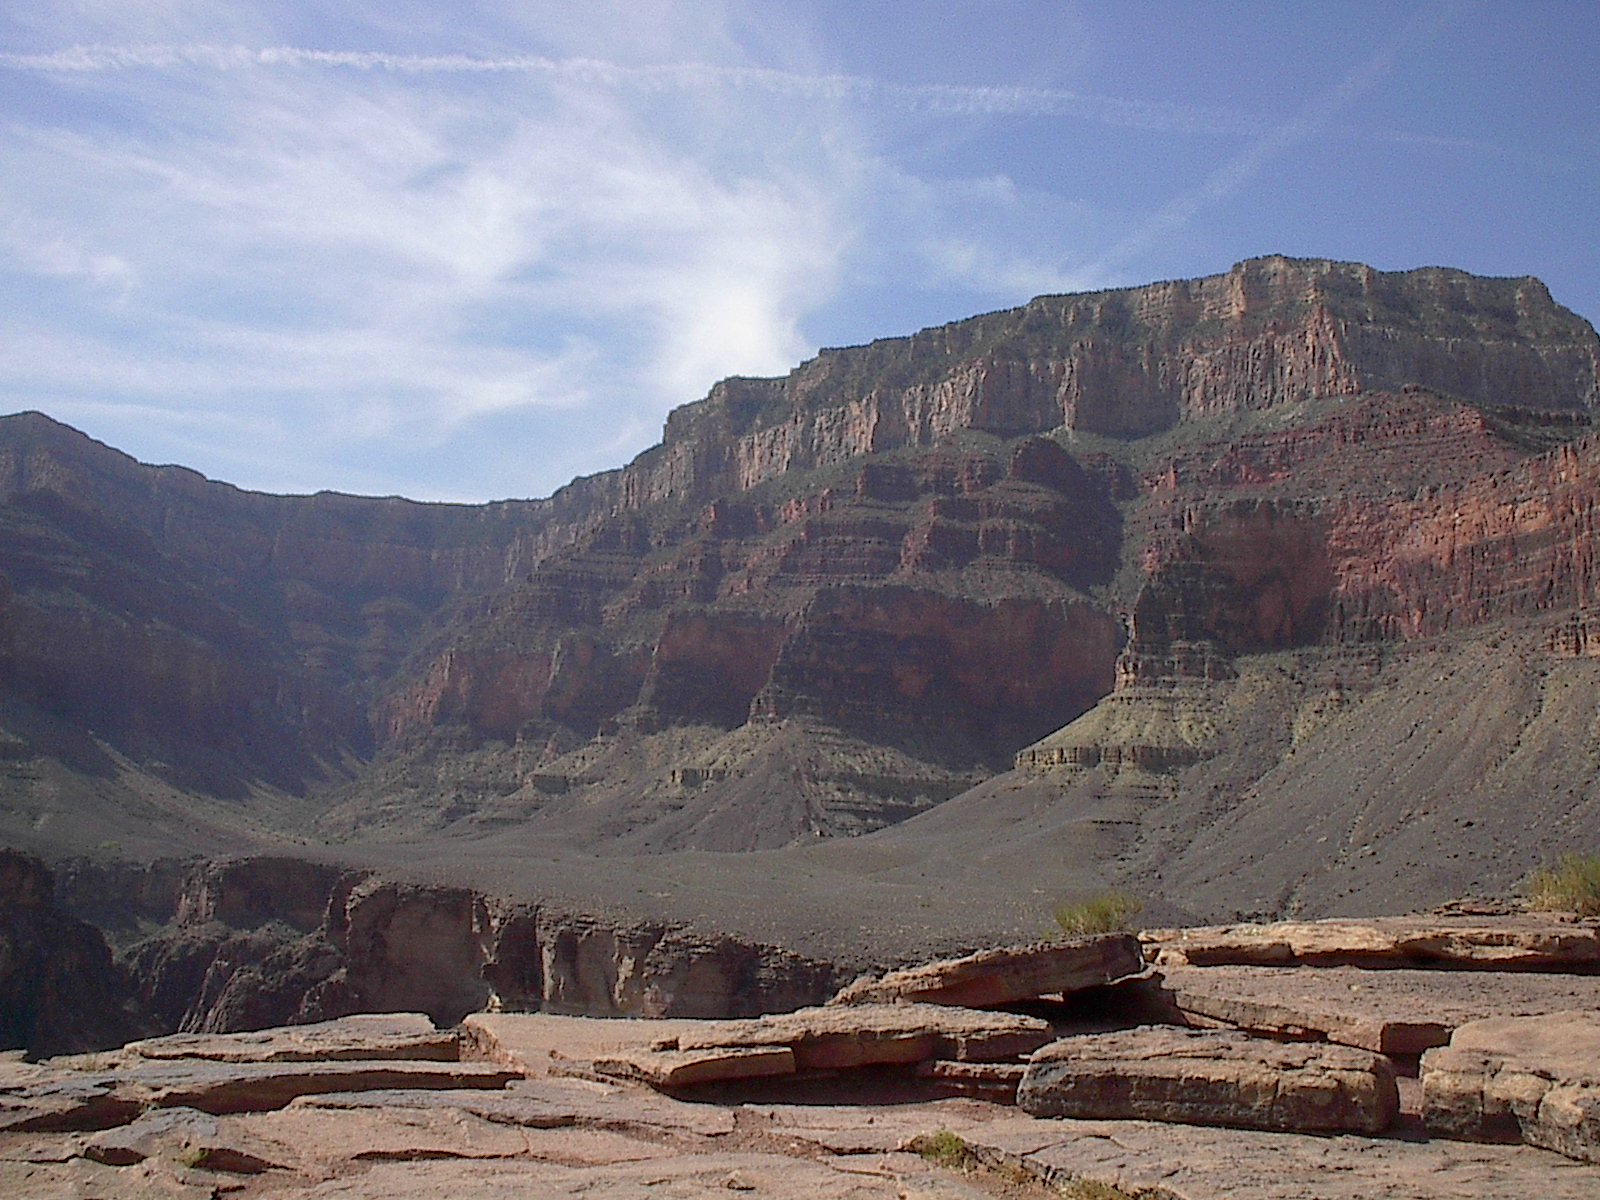 http://upload.wikimedia.org/wikipedia/commons/d/da/Grand_Canyon_Plateau_Point.JPG